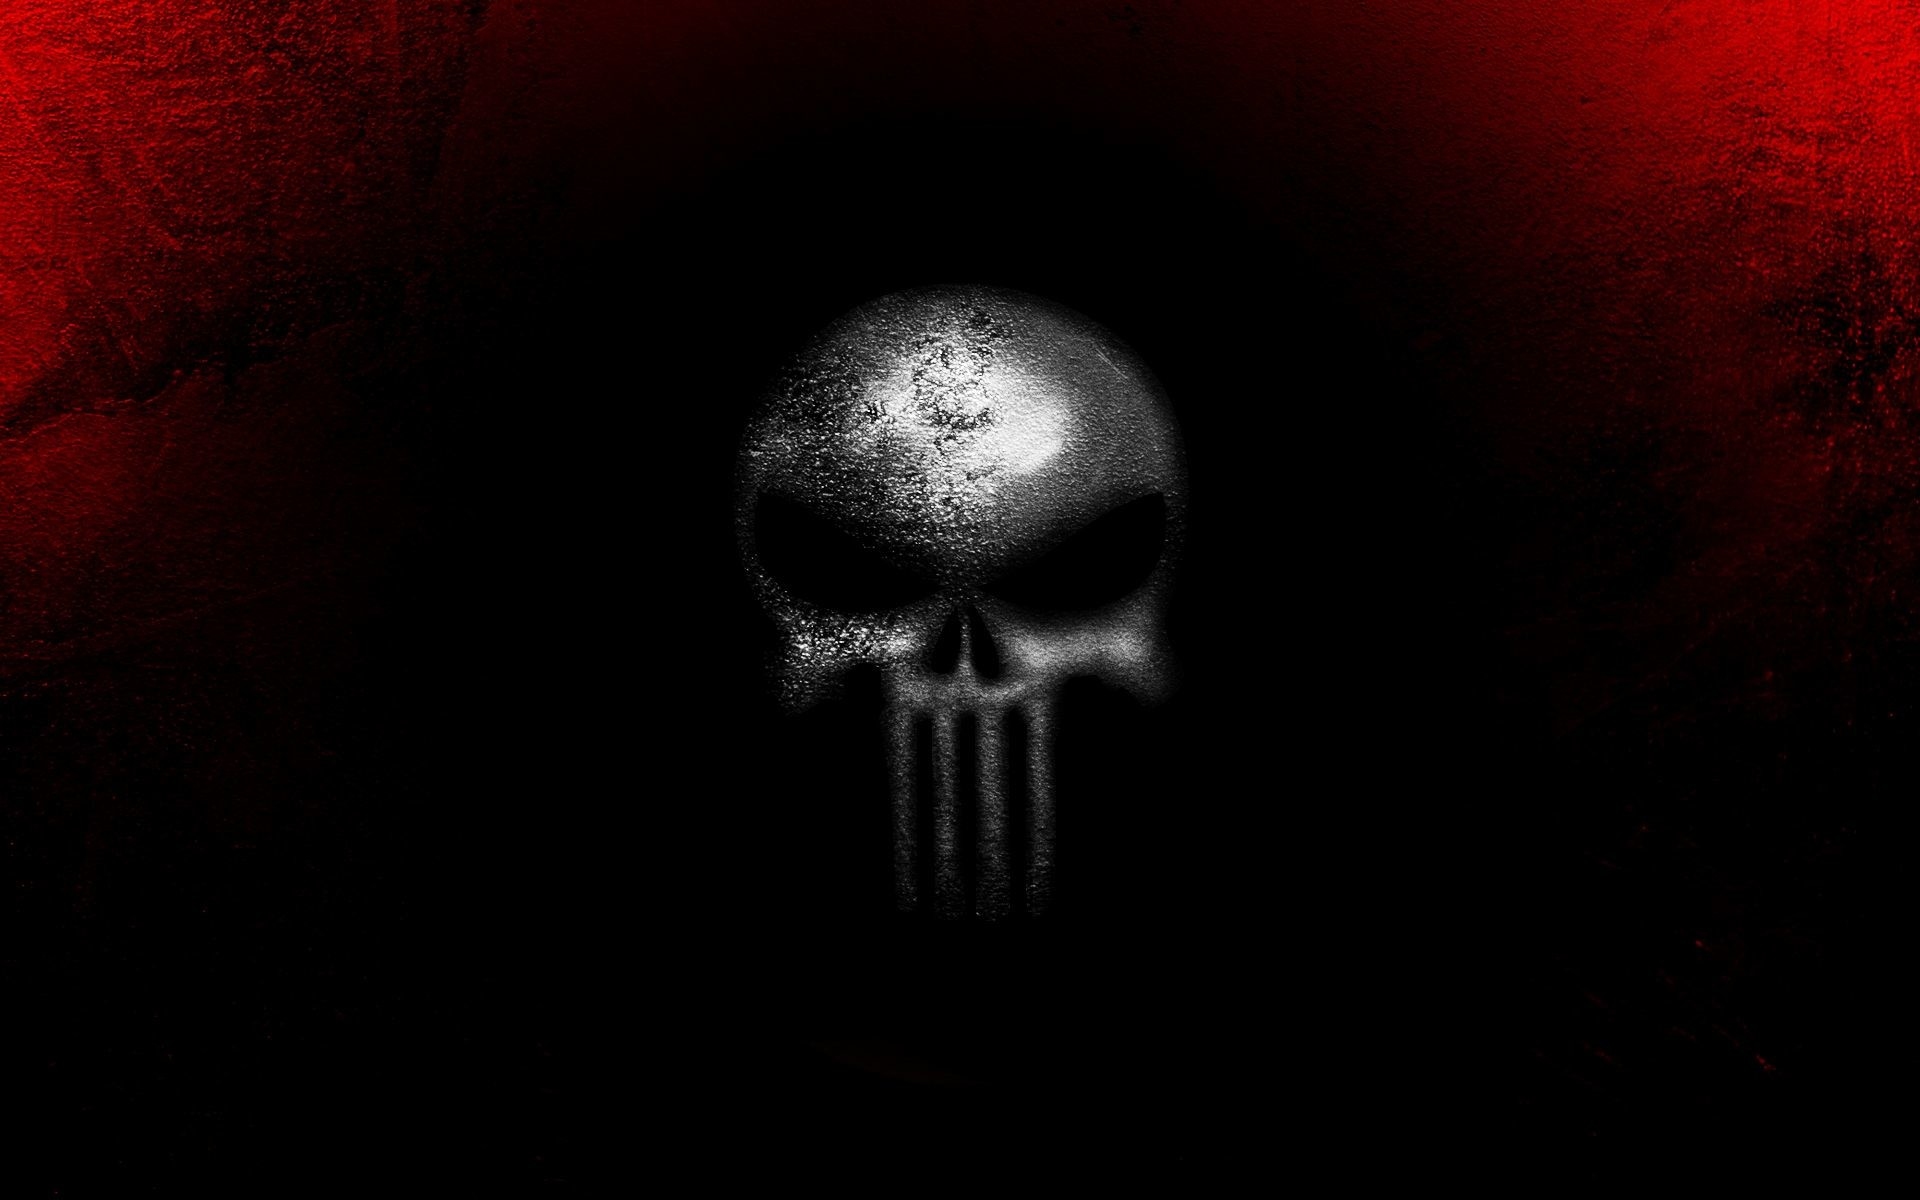 1920x1200 The Punisher Wallpapers Wallpaper | HD Wallpapers | Pinterest | Punisher  and Wallpaper